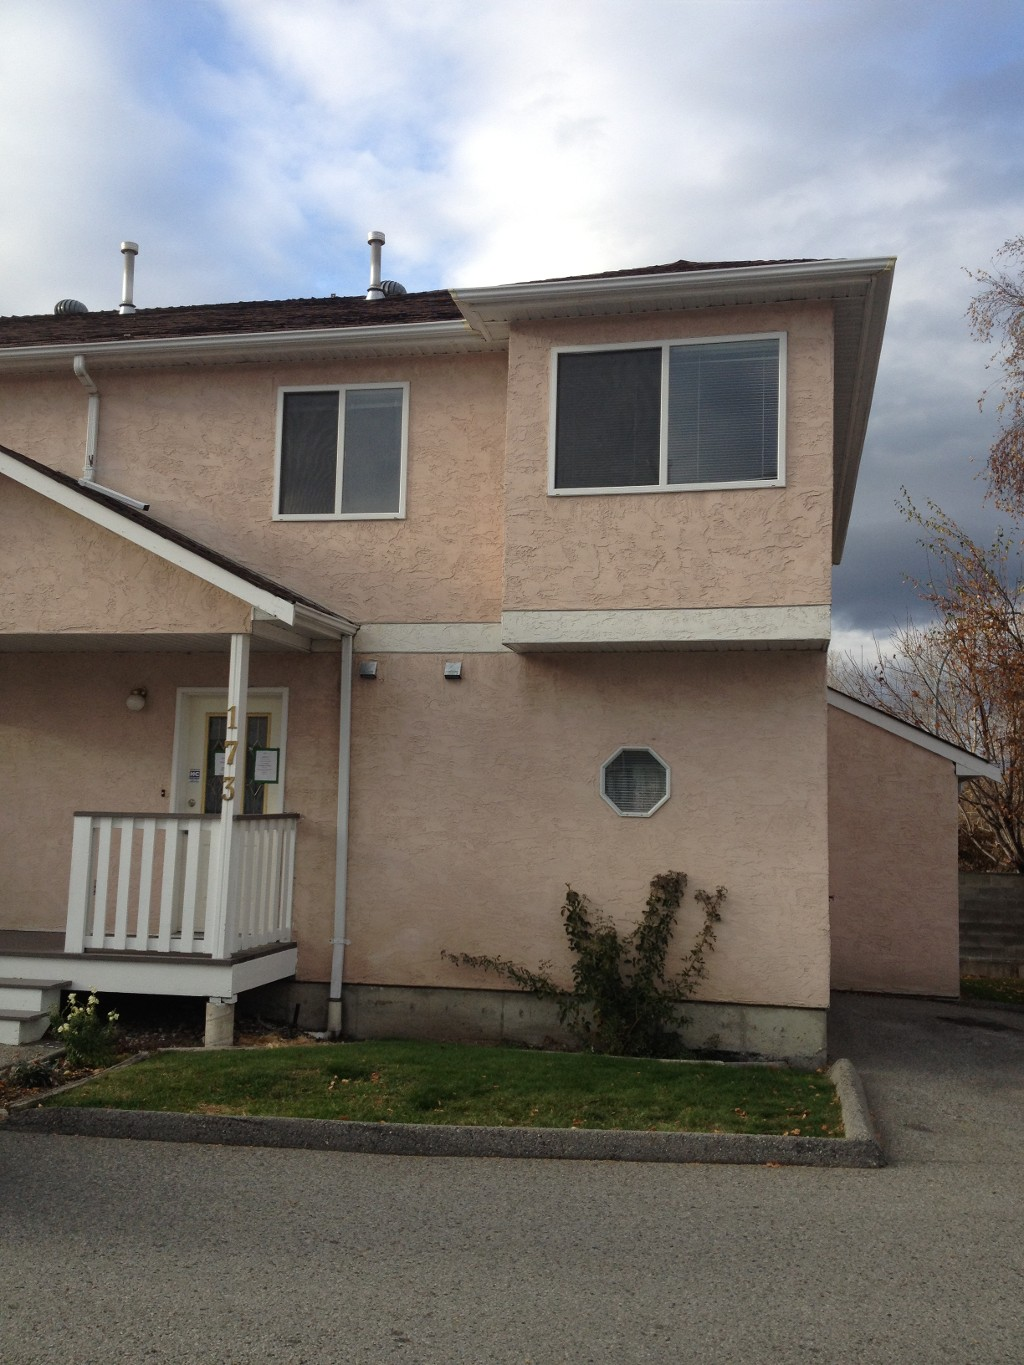 Main Photo: 173 1458 Penticton Avenue in Penticton: Columbia/Duncan Residential Attached for sale : MLS® # 140560